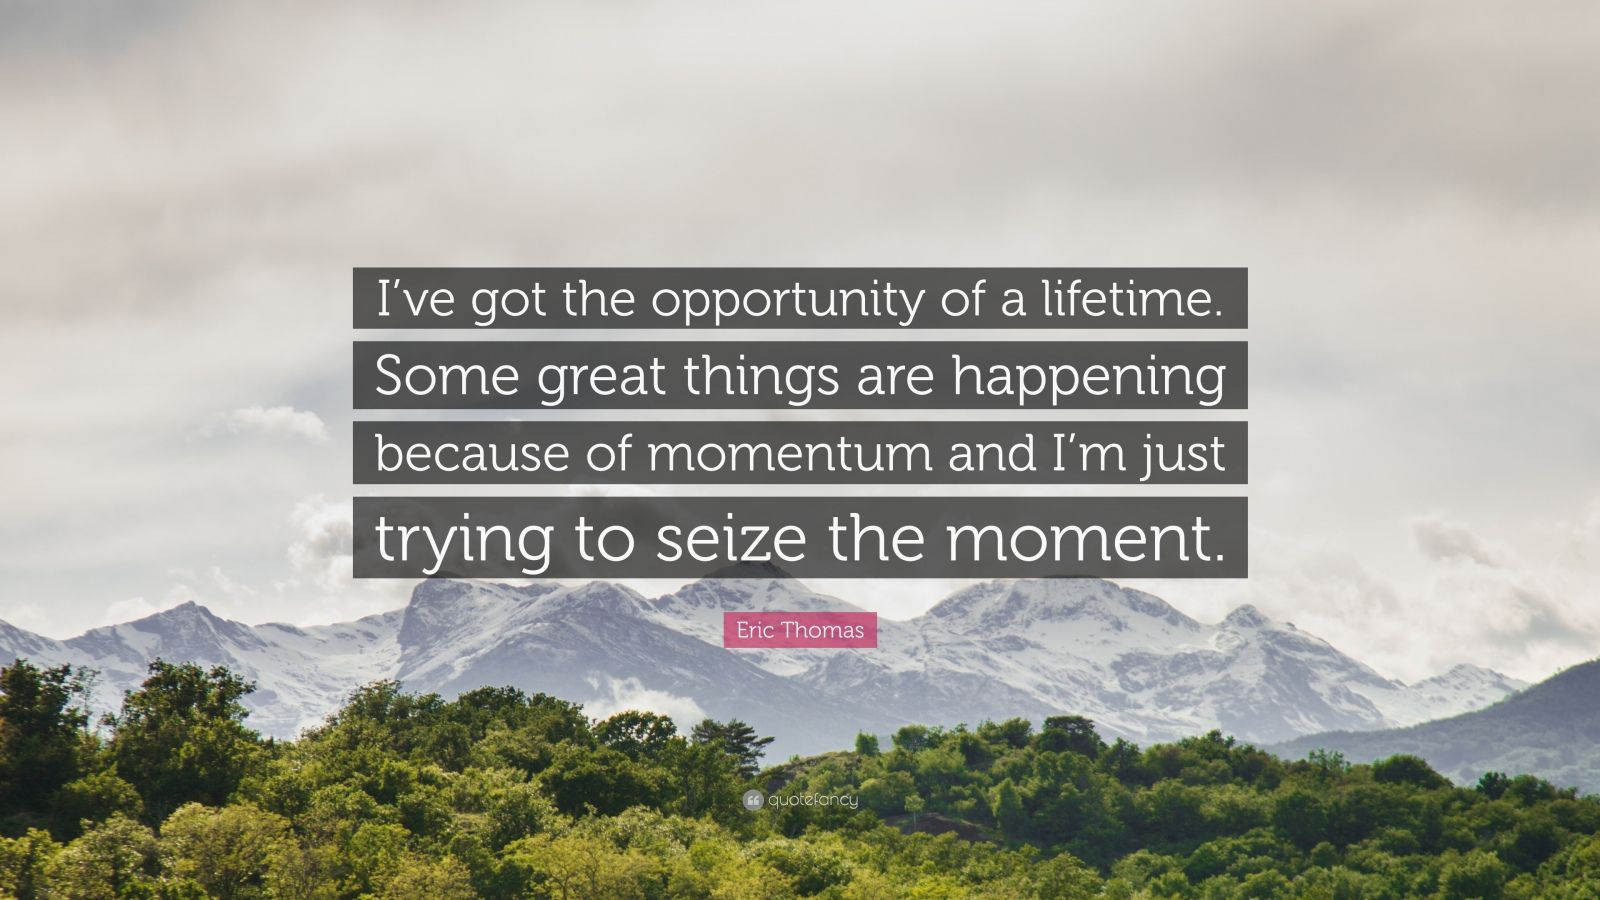 """Eric Thomas Quote: """"I've got the opportunity of a lifetime. Some great things are happening because of momentum and I'm just trying to seize the moment."""""""